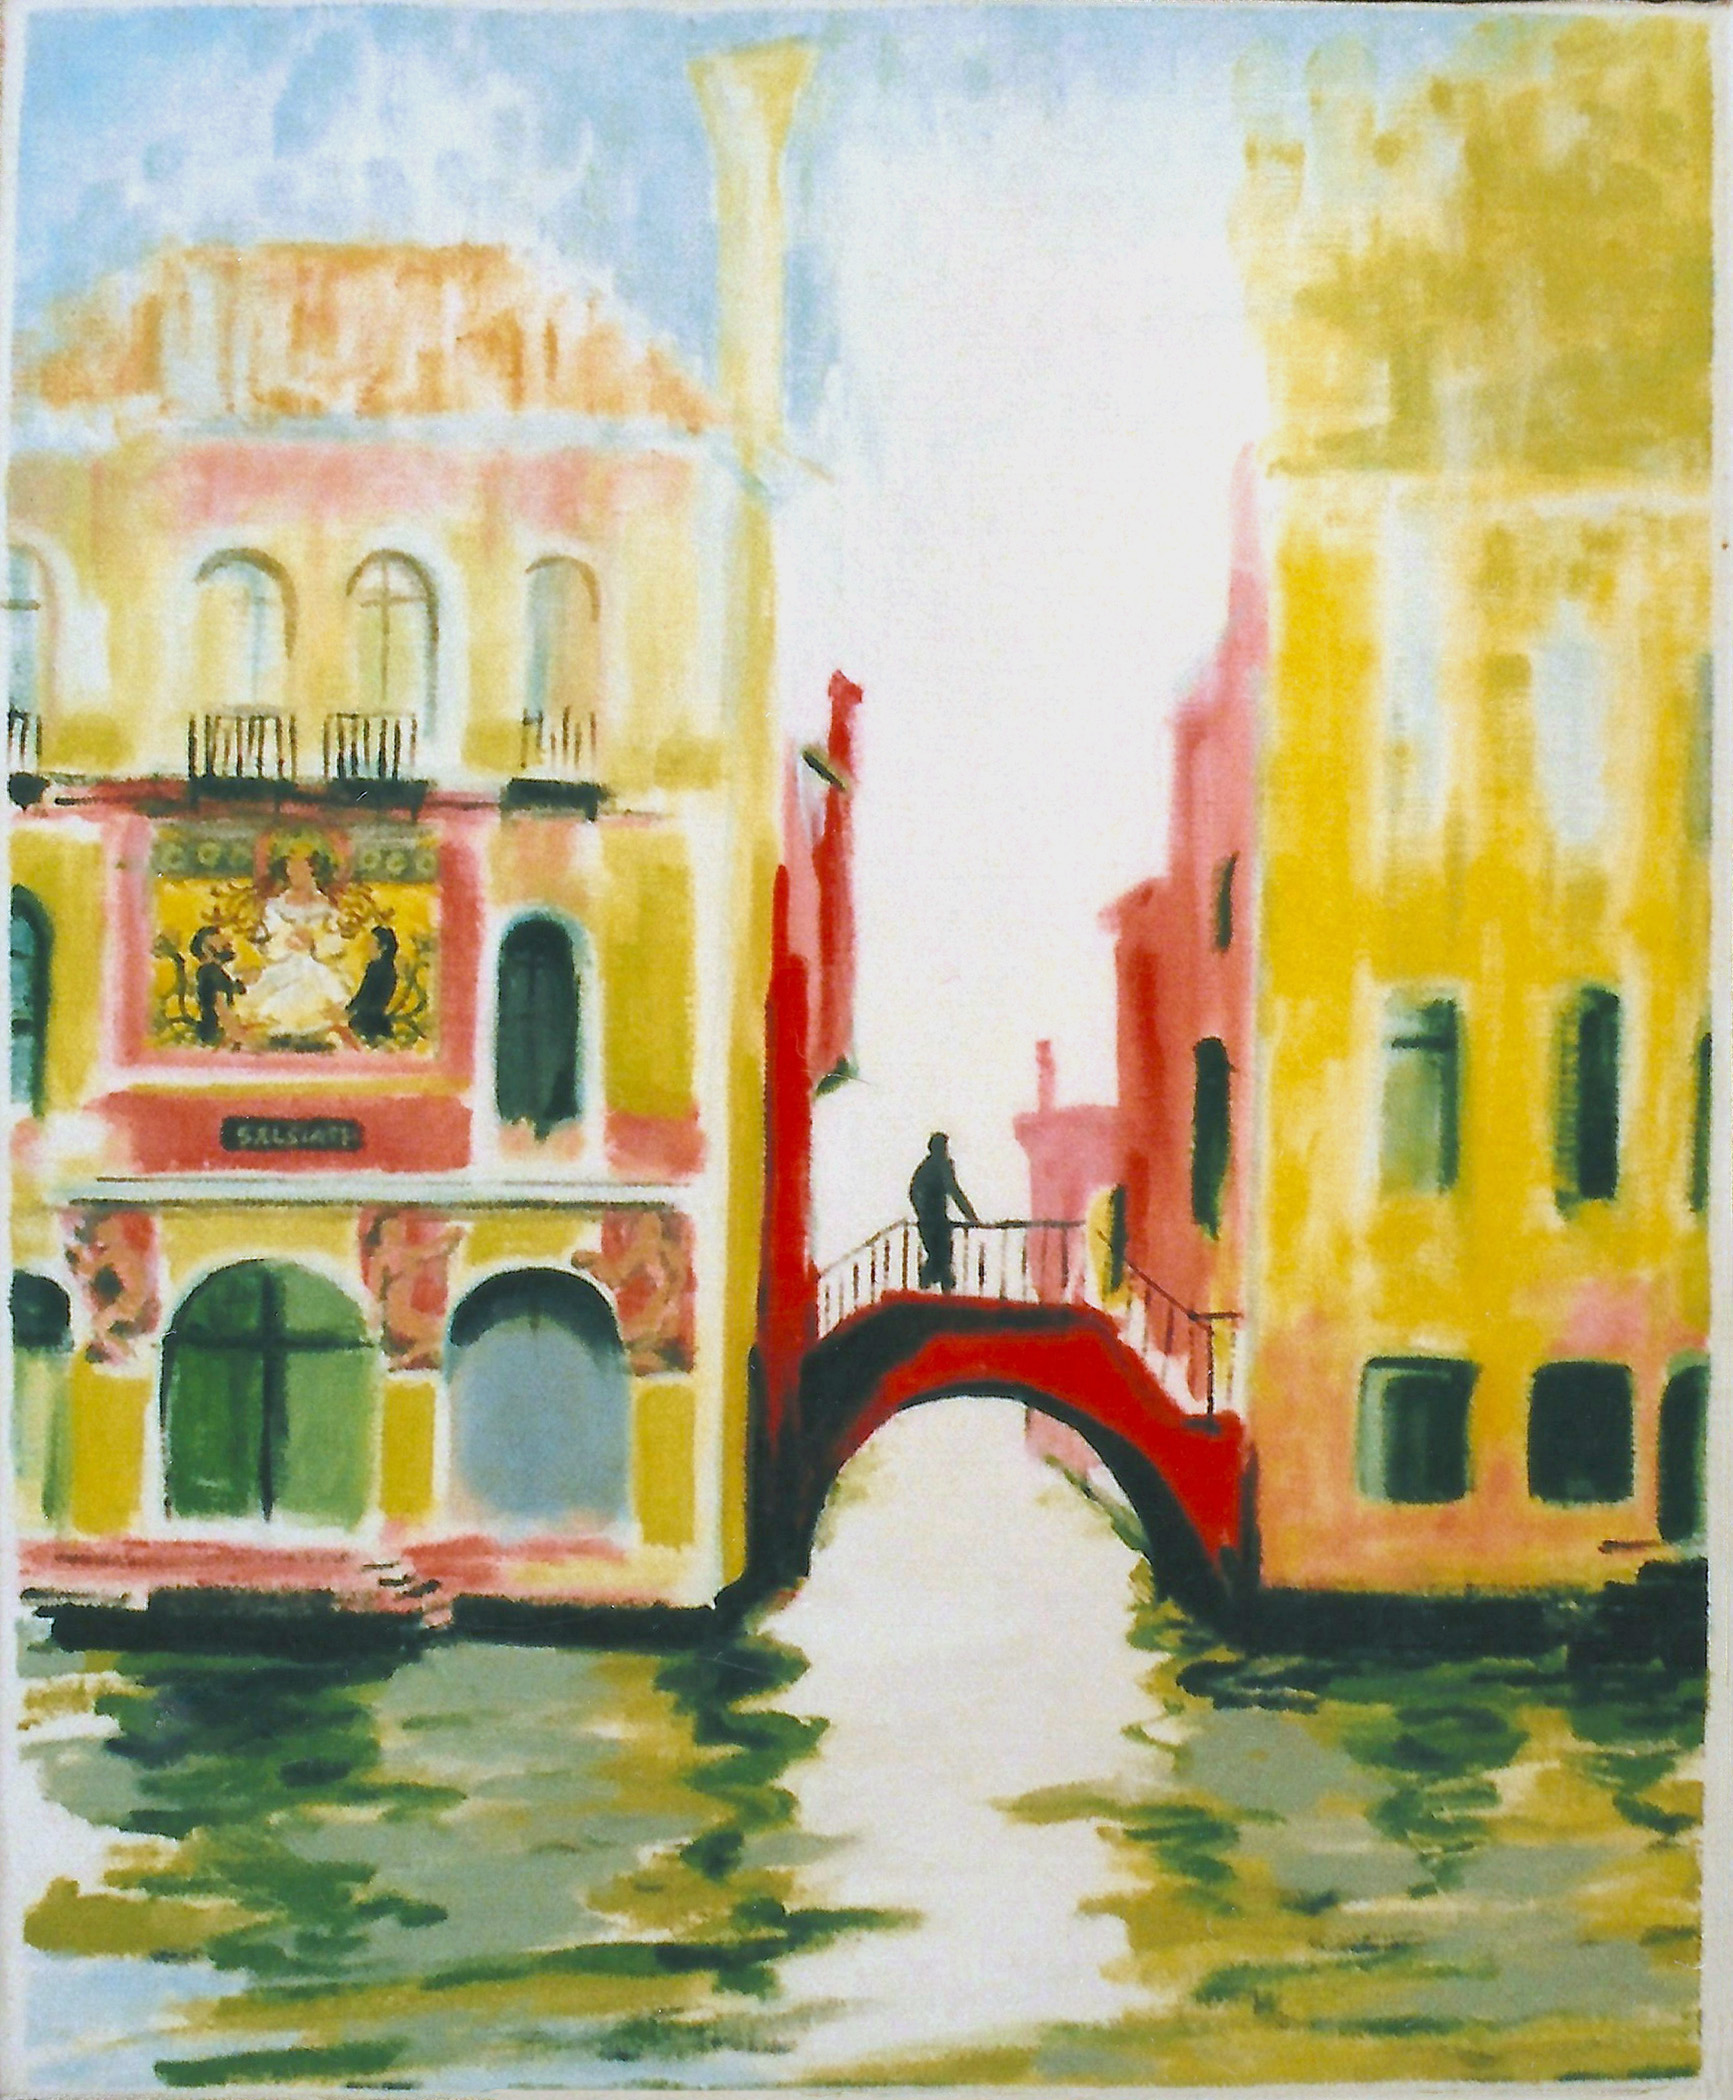 Little Bridge, Venice 2011